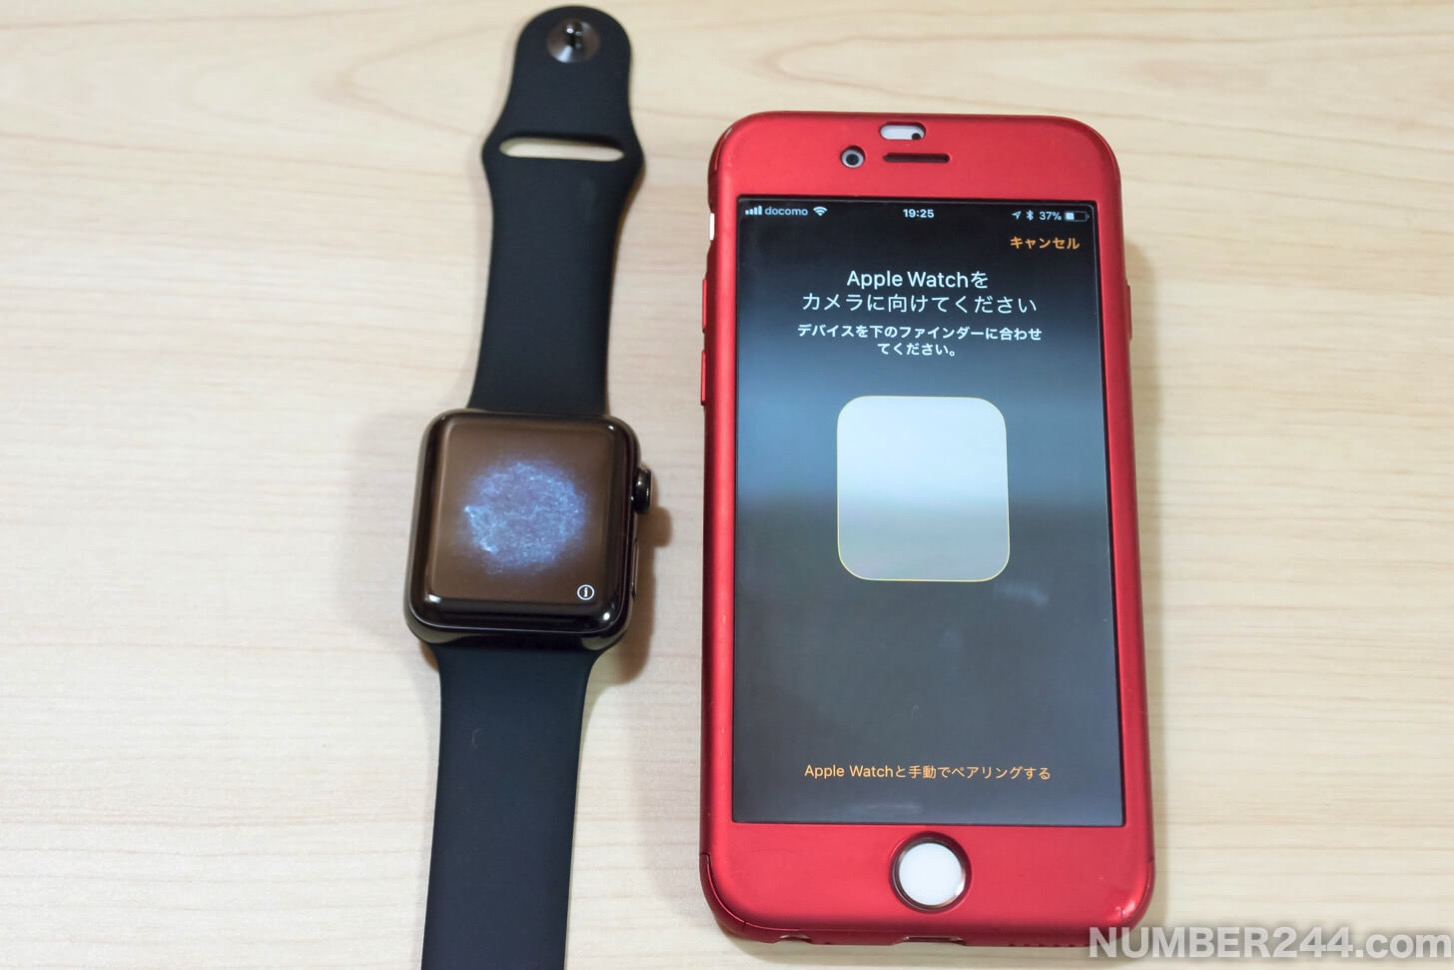 Initial setting of Apple Watch 3